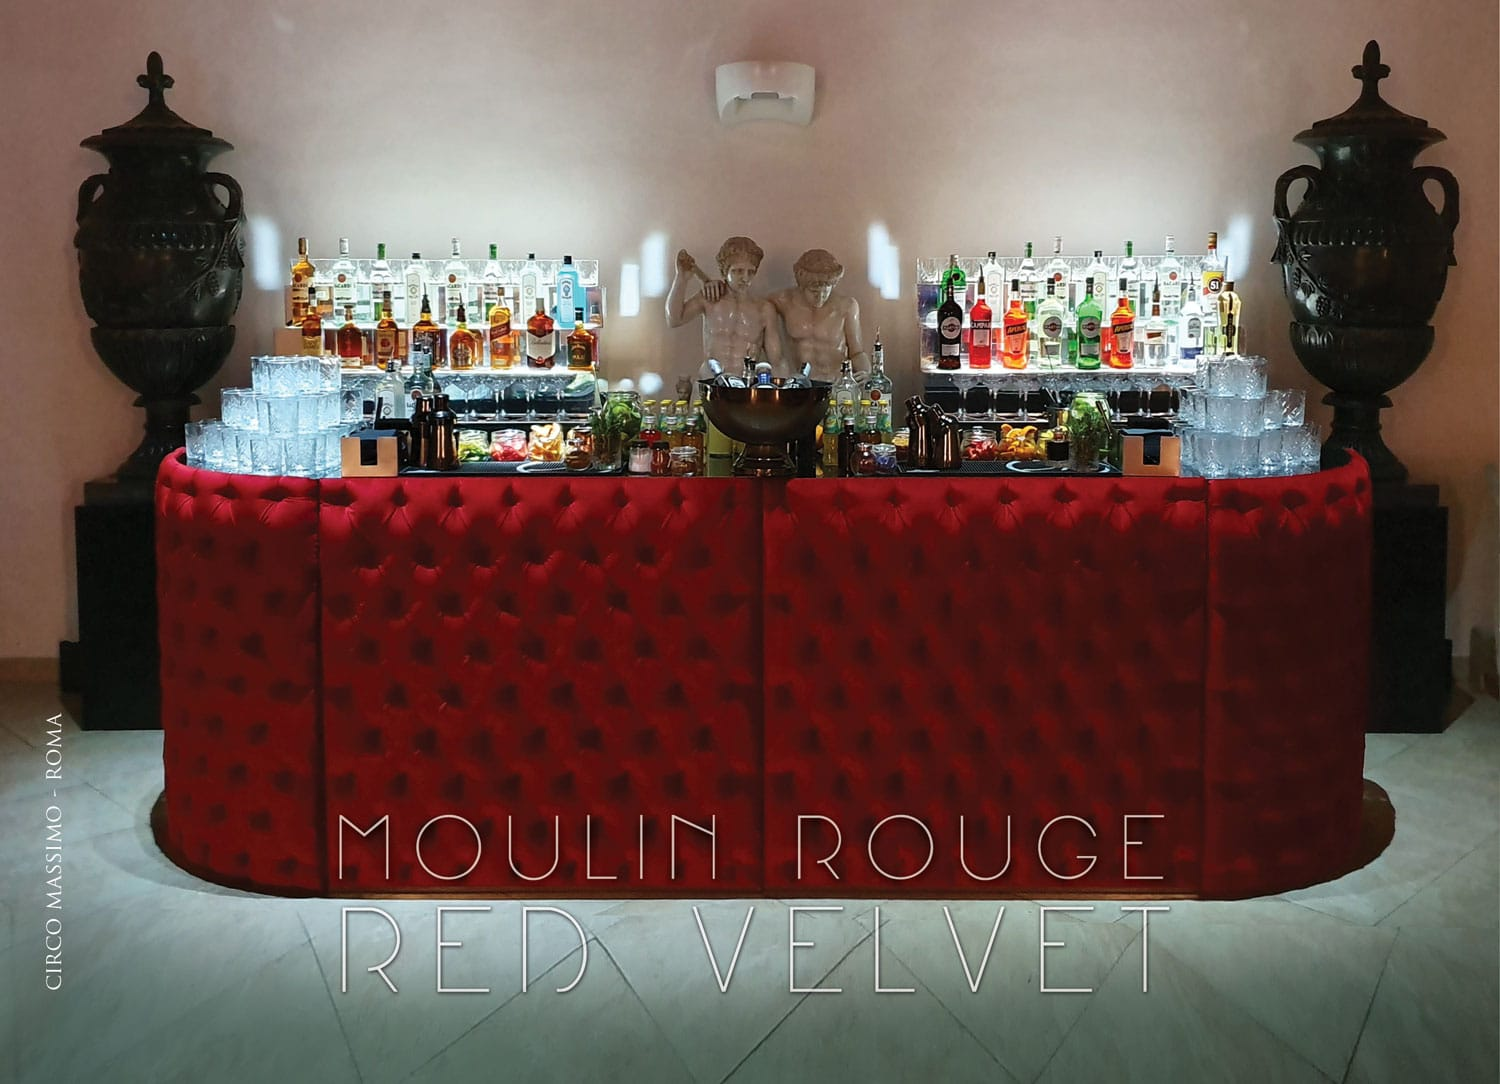 moulin rouge red velvet bar